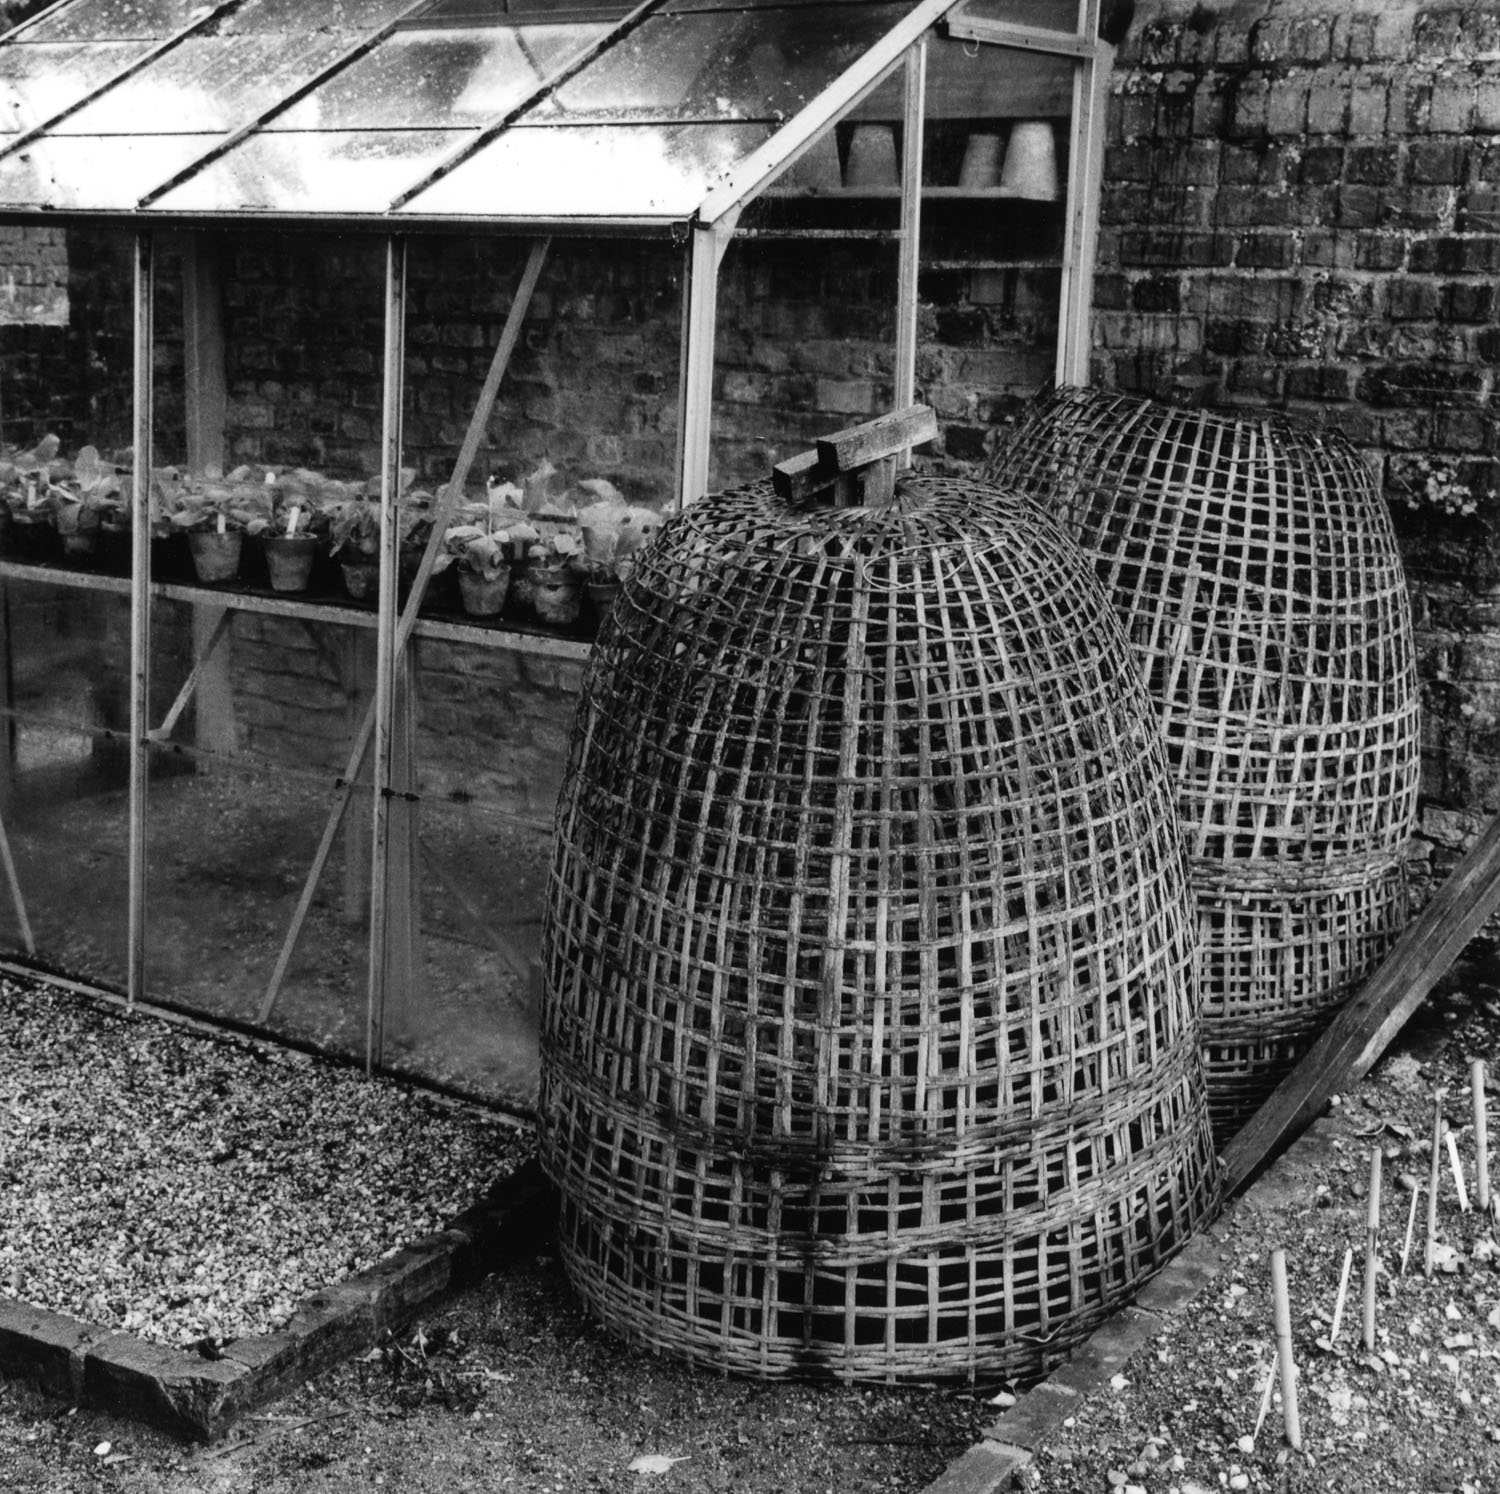 Woven Cloches, Hatfield House